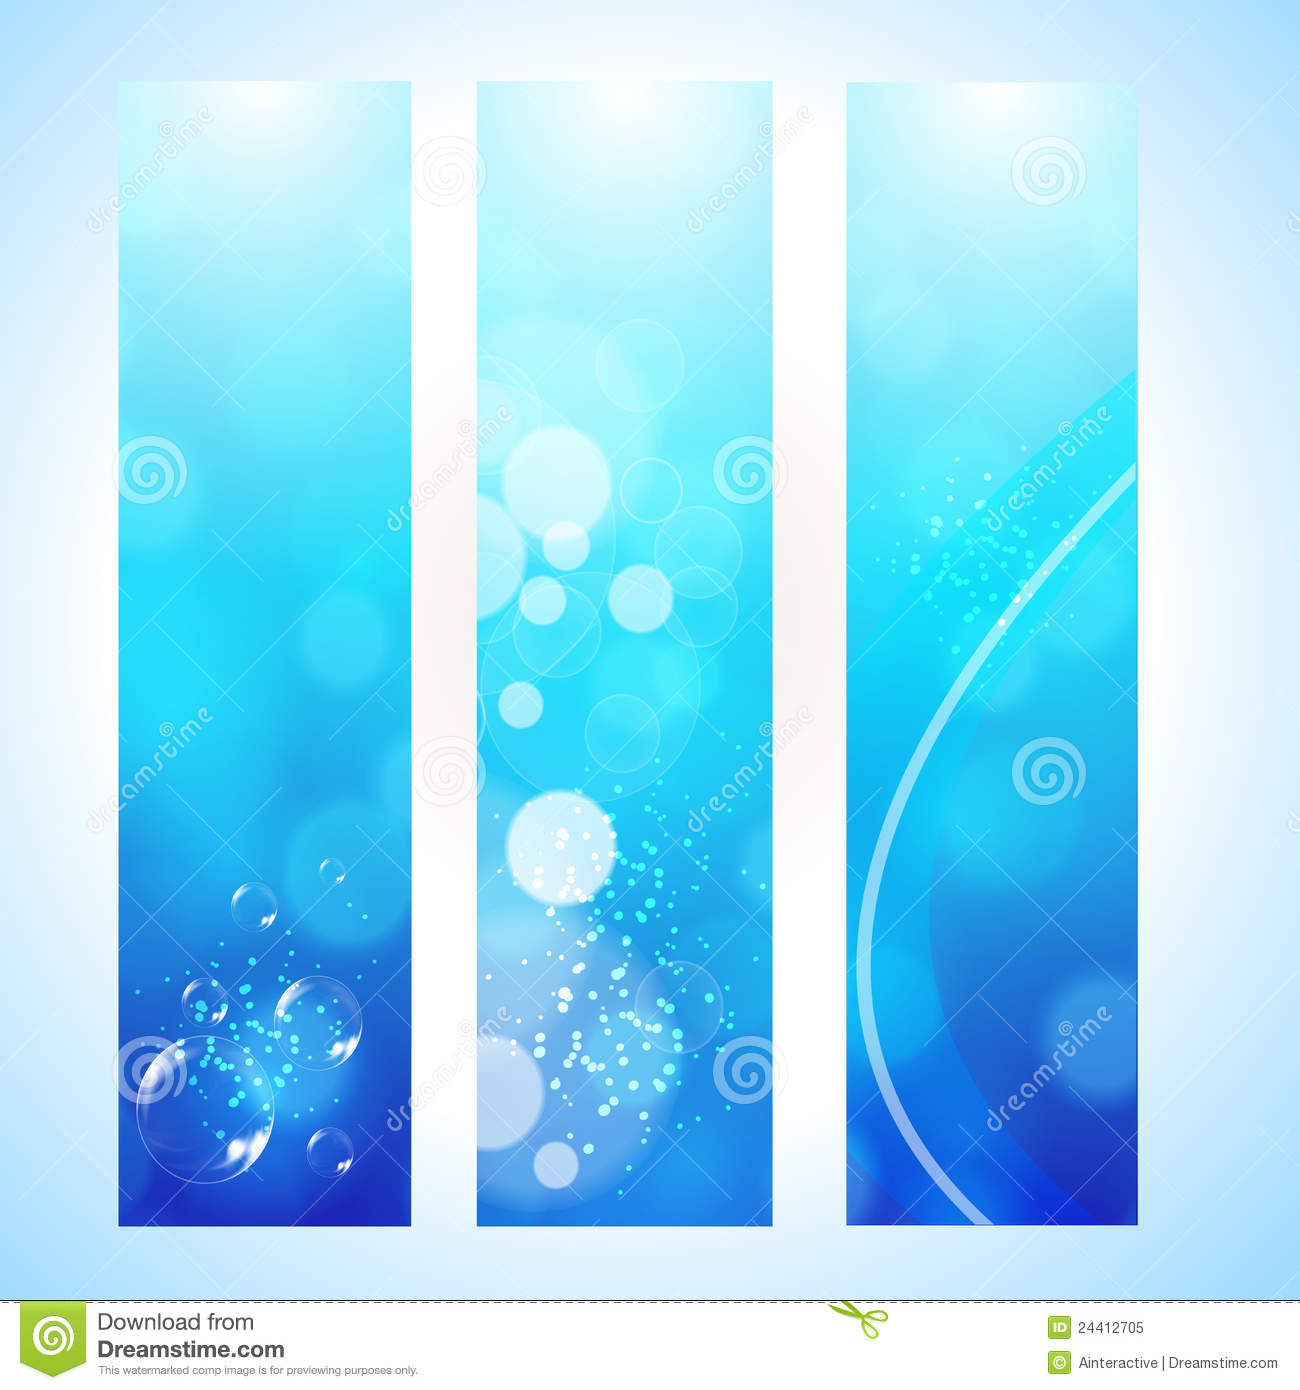 Background image header - Abstract Background Header With Water Wave Royalty Free Stock Photo